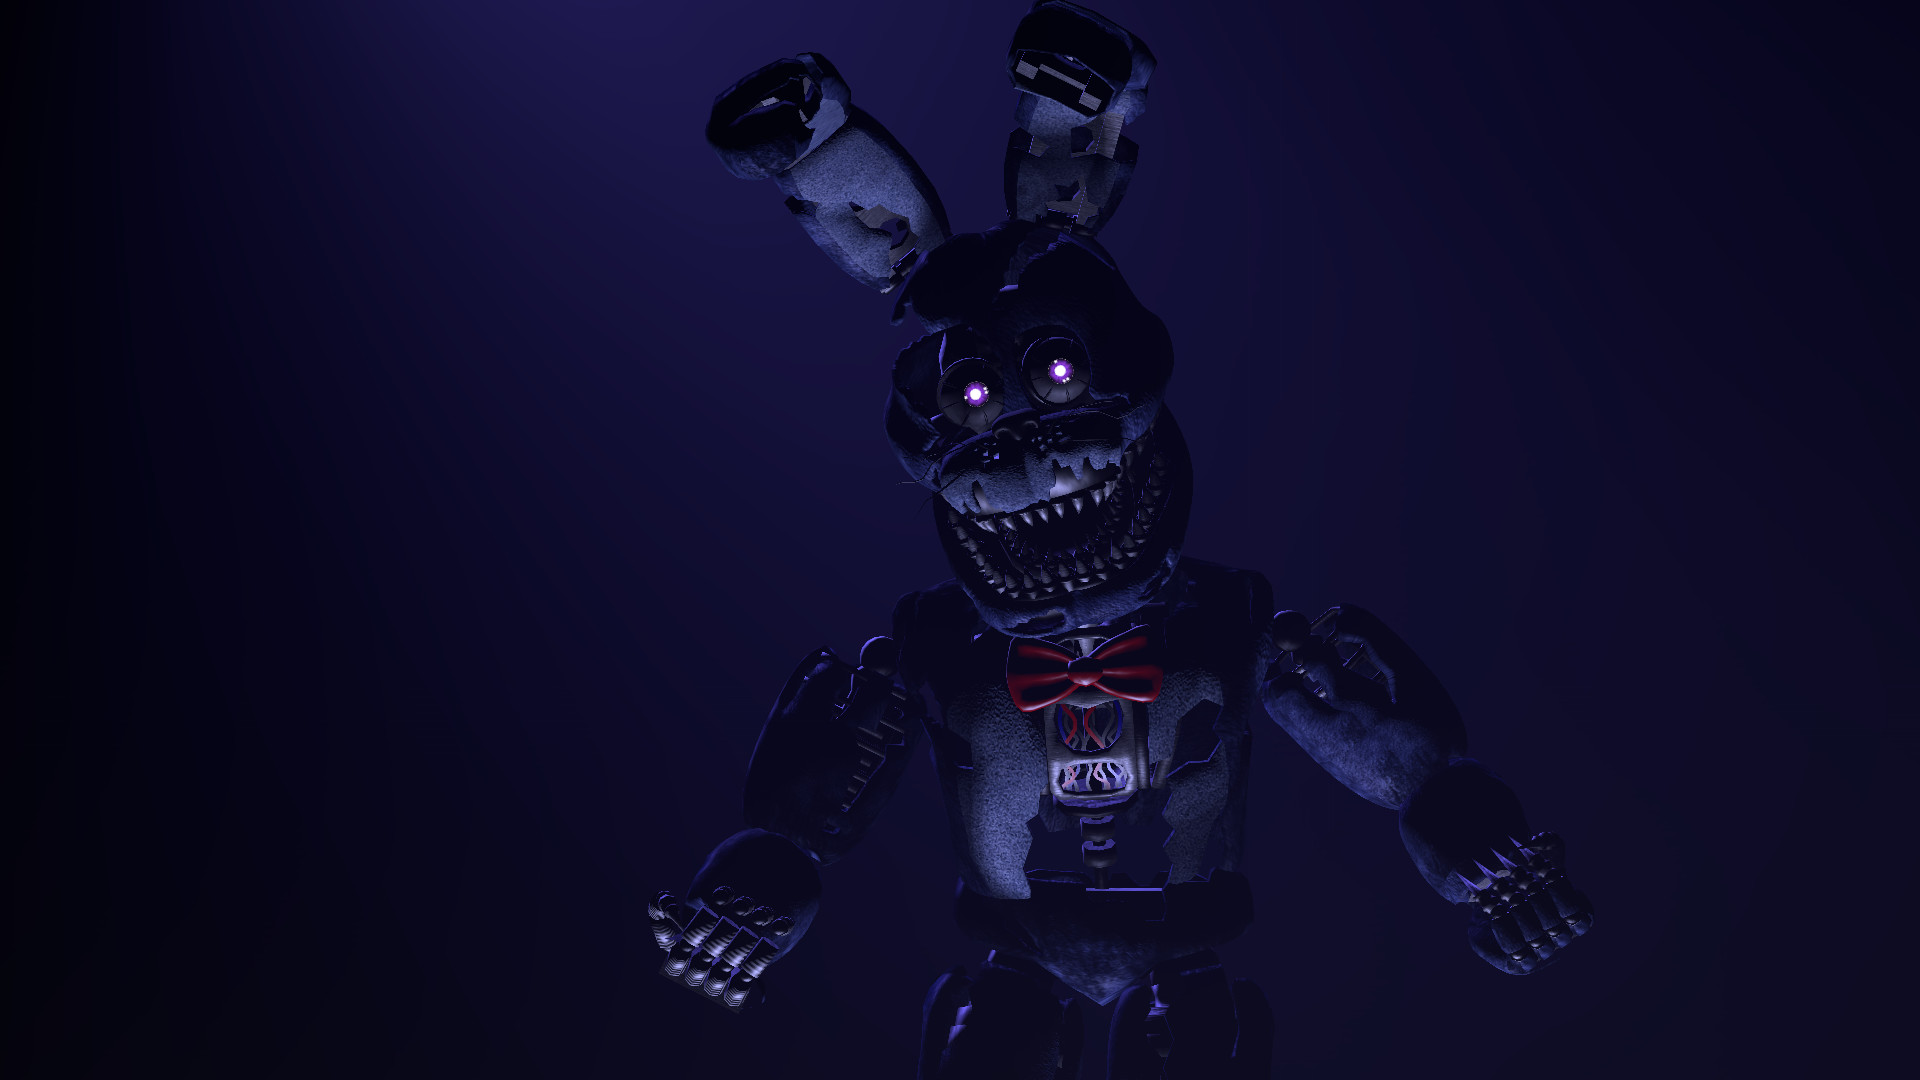 1920x1080 FNAF Nightmare Bonnie HD Wallpapers Free Download » Unique High Resolution  Wallpapers